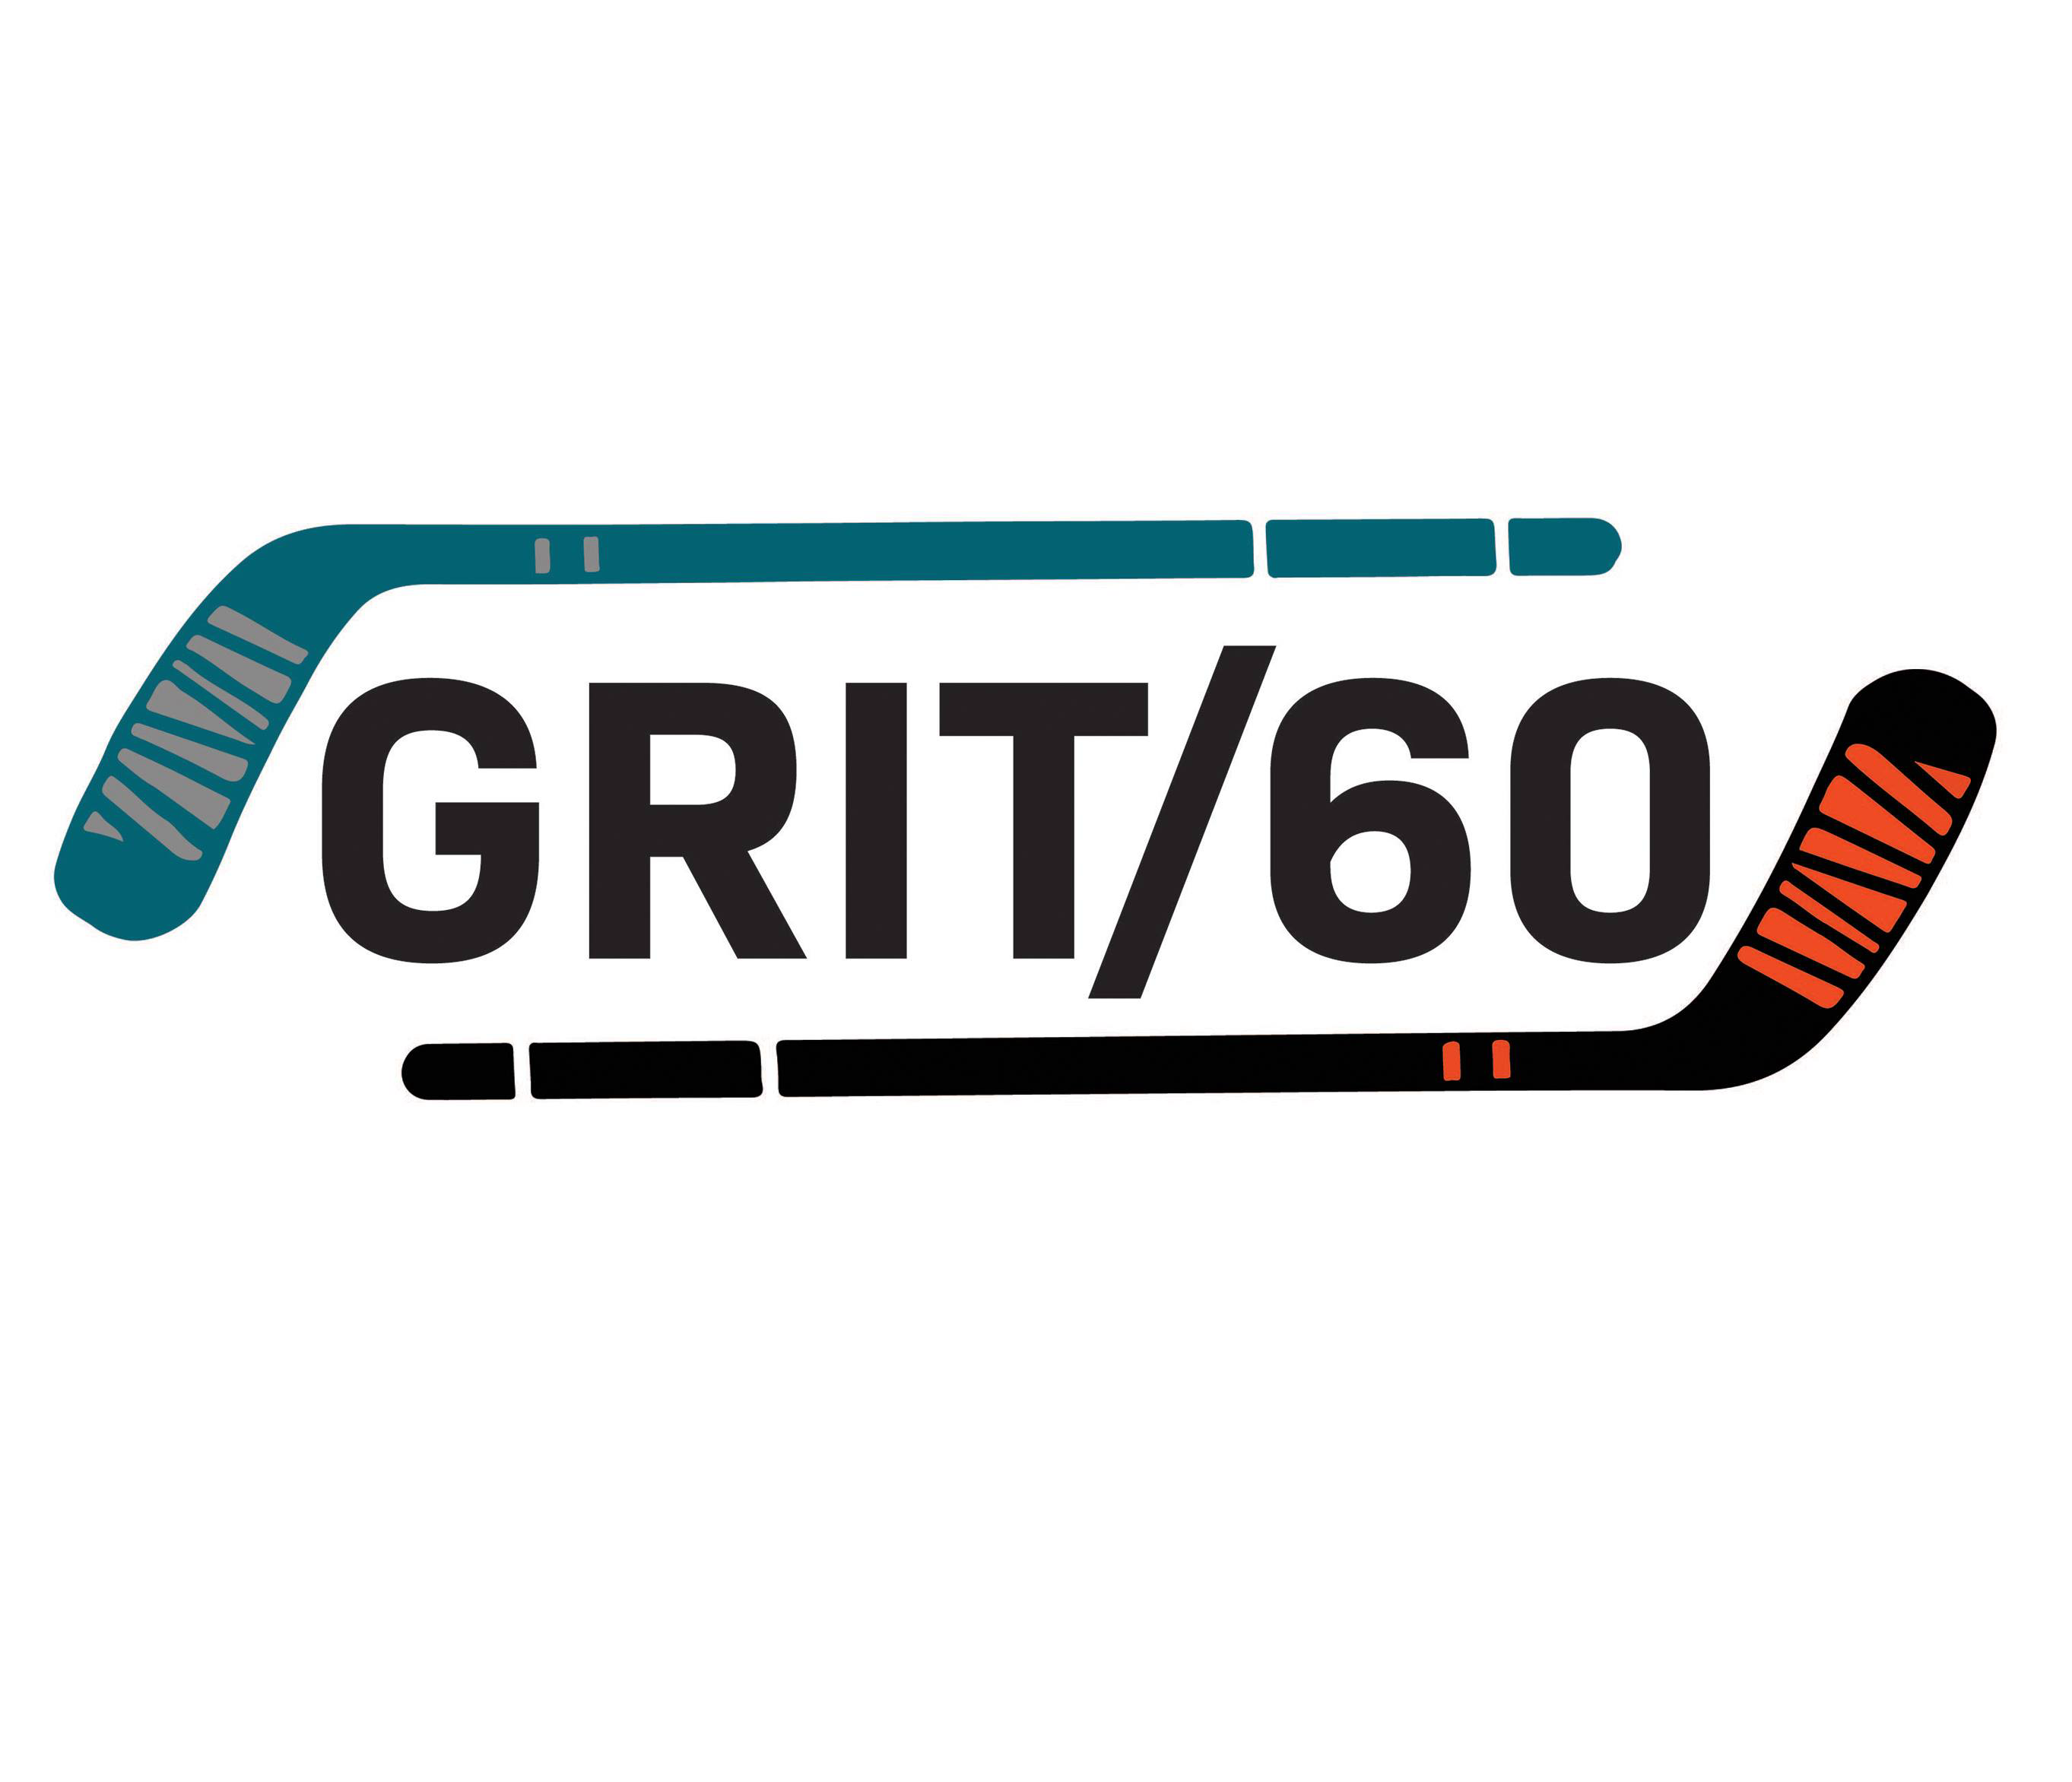 Partner Announcement - Grit/60 Podcast